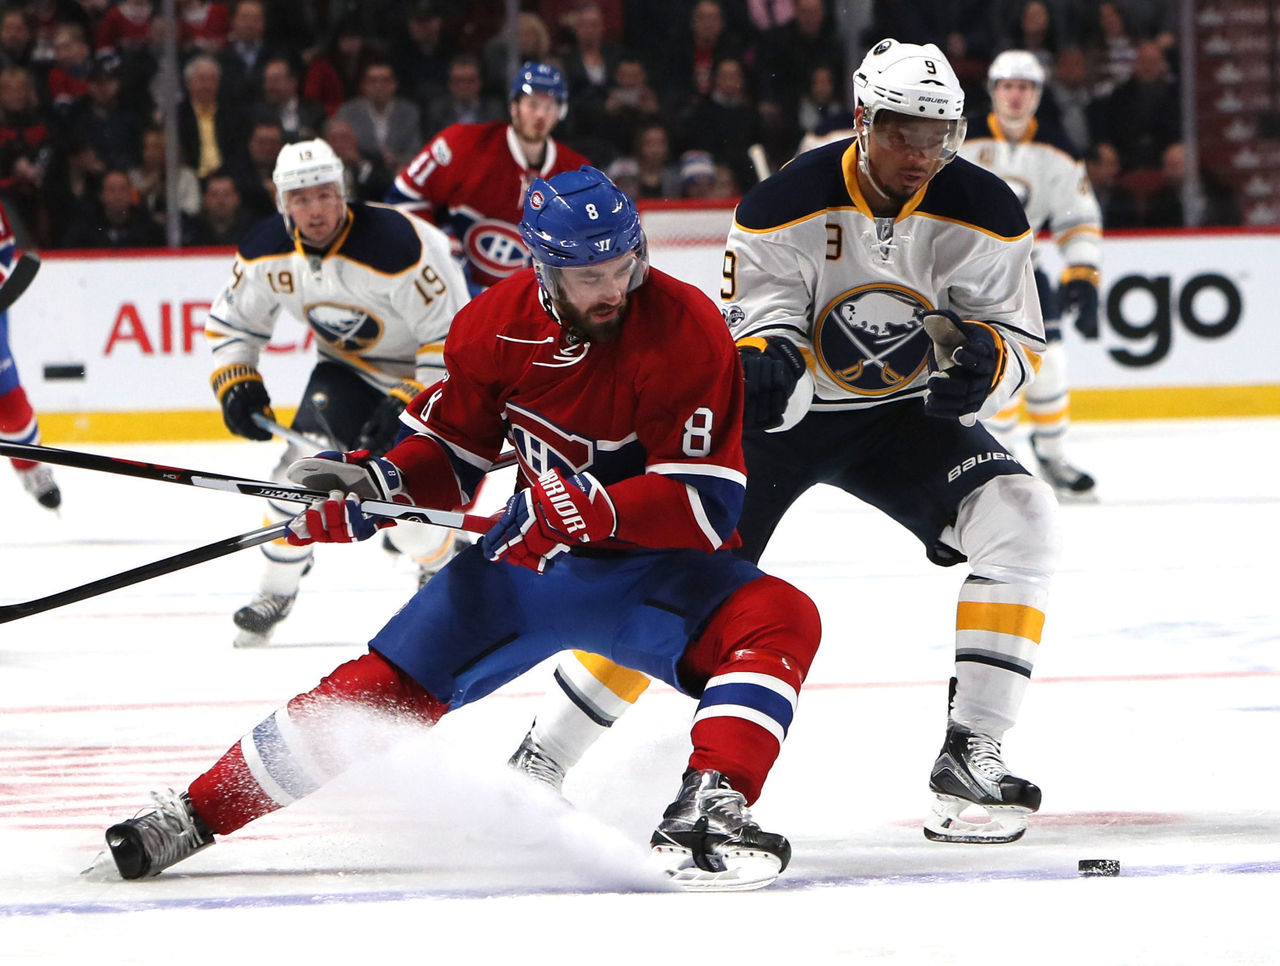 Cropped 2017 02 01t015247z 822222744 nocid rtrmadp 3 nhl buffalo sabres at montreal canadiens